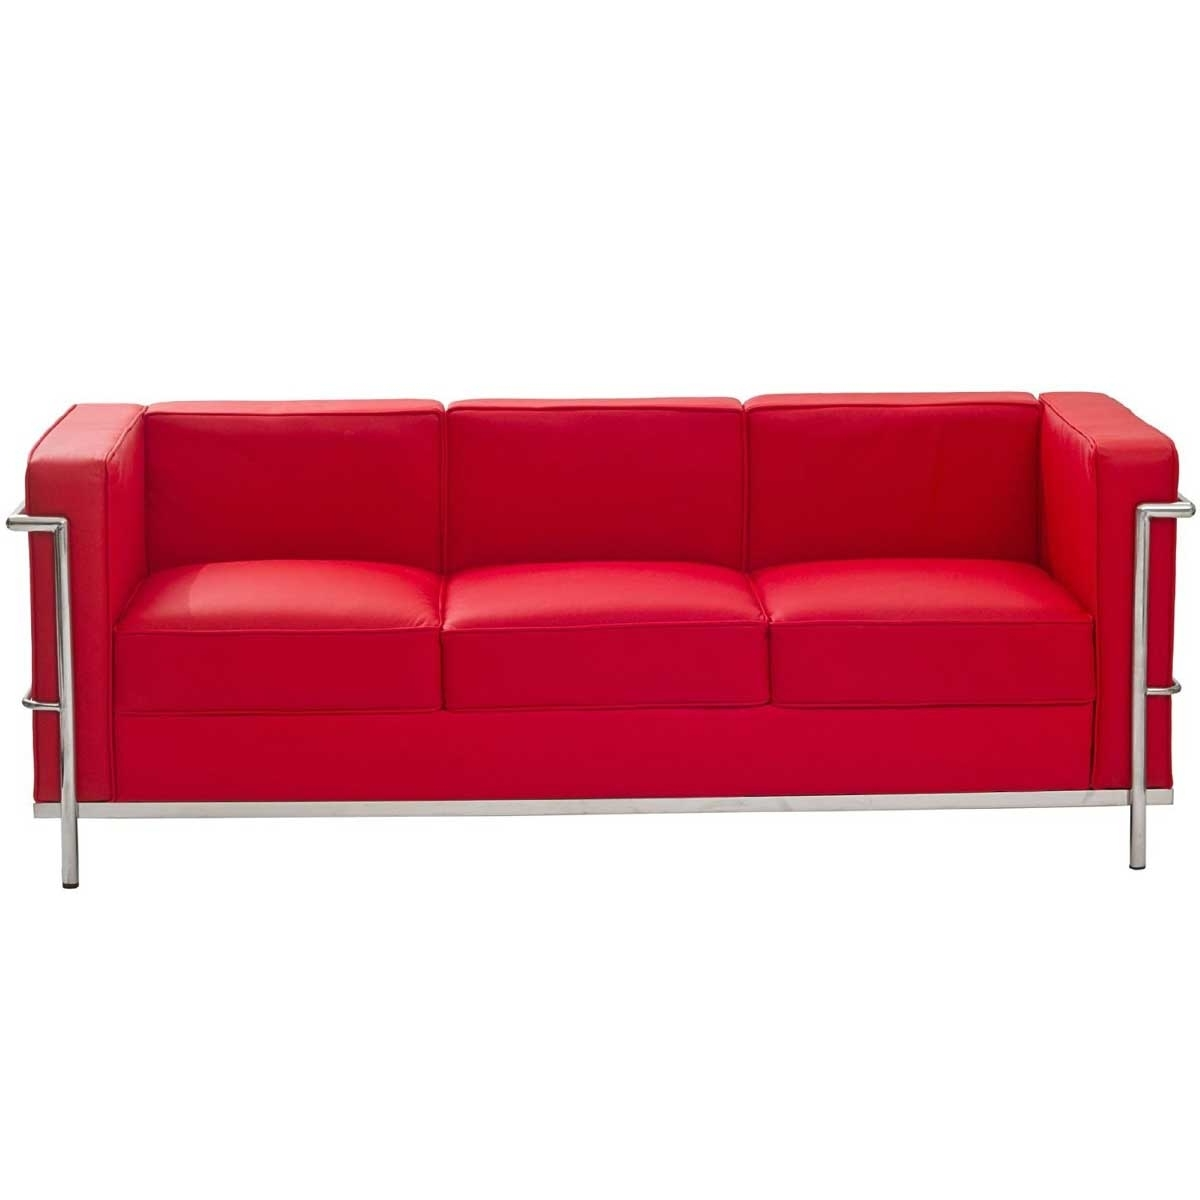 Interior : Red Sofa And Loveseat Leather Interior Furniture For Favorite Red Sofa Chairs (Gallery 8 of 15)